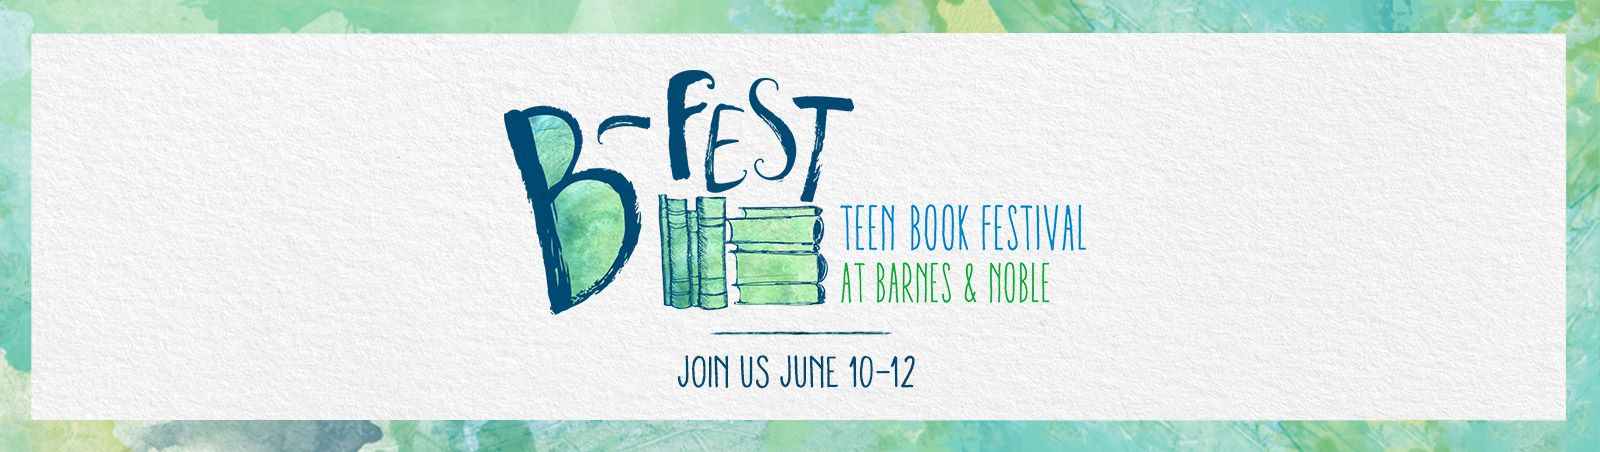 B-Fest Teen Book Festival at Barnes & Noble | All Things Books ...